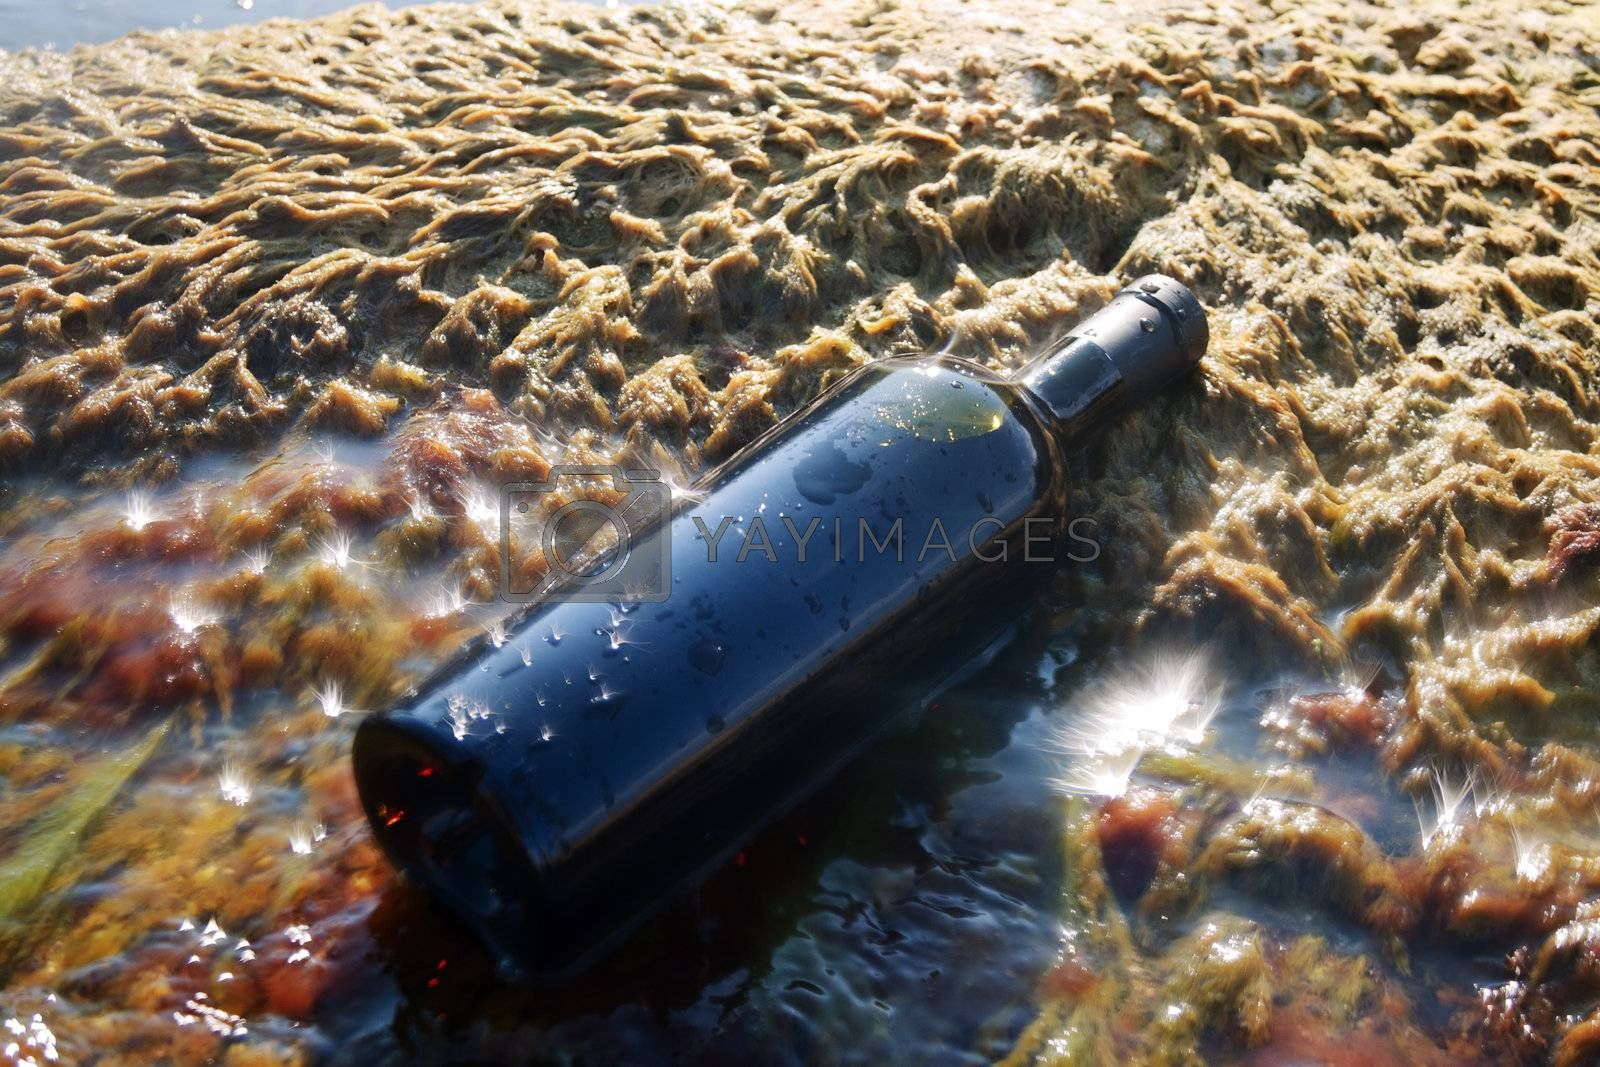 Wine in the bottle lying on the beach.